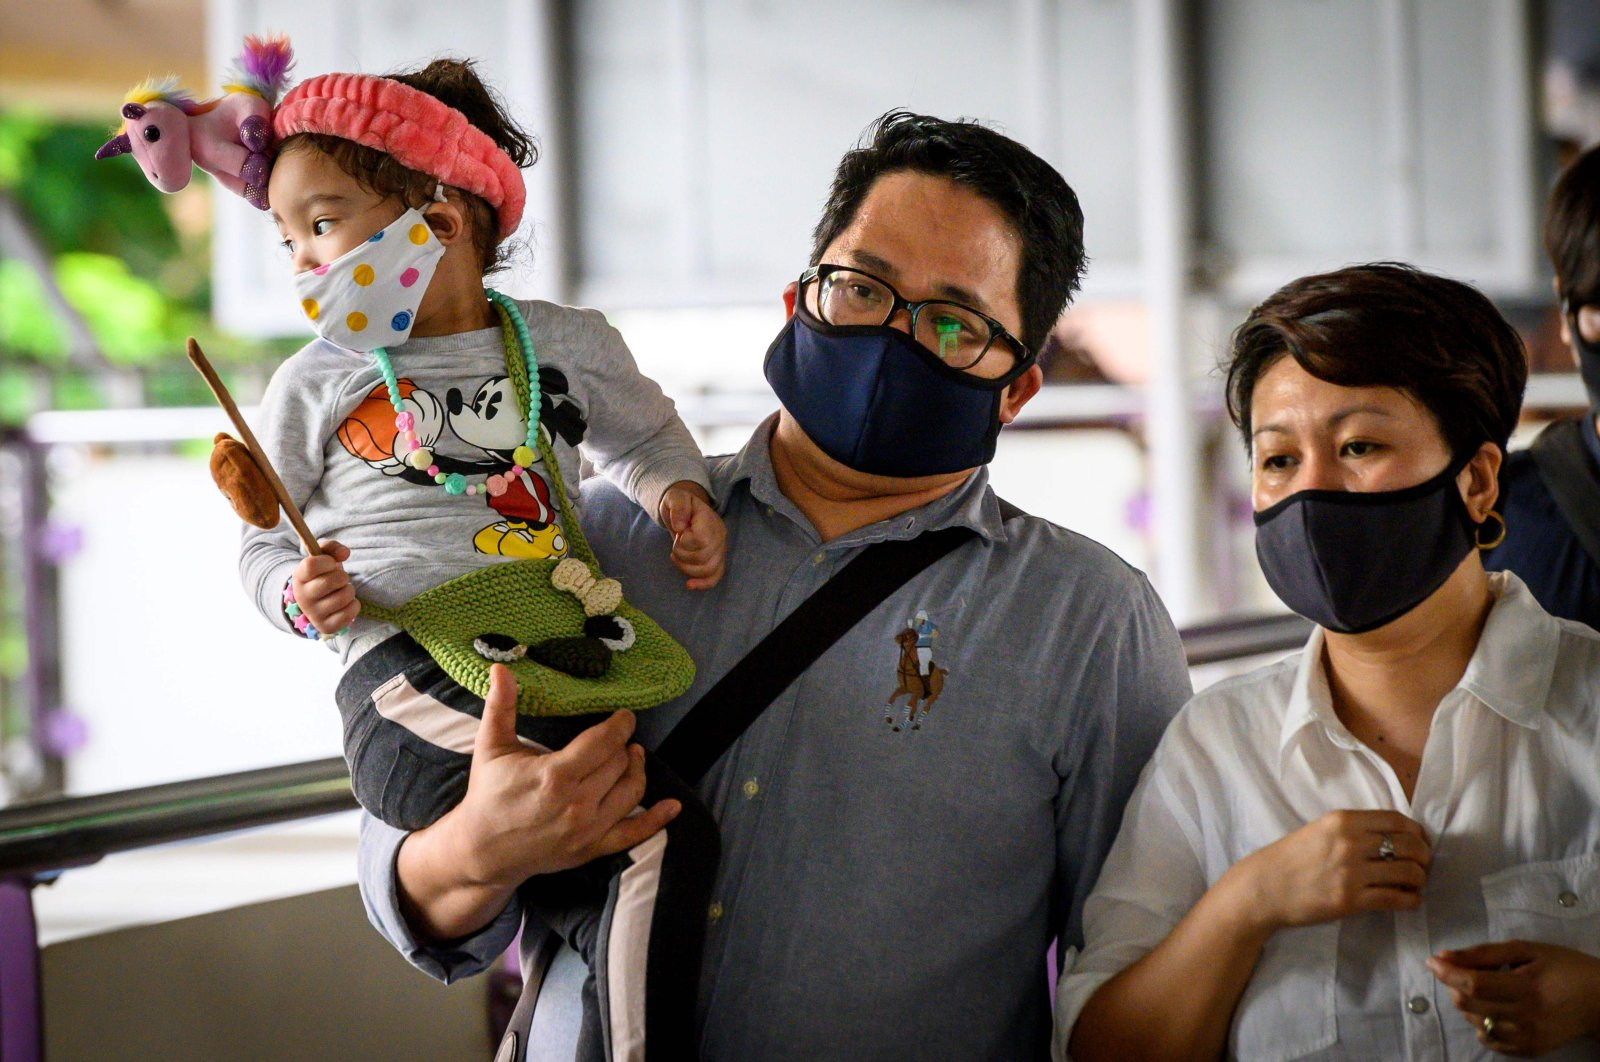 A child wearing a face mask is carried into a train station at rush hour in Bangkok, Thailand, as Thais continued their return to work following the lifting of restrictions to halt the spread of the coronavirus, May 25, 2020. (AFP Photo)